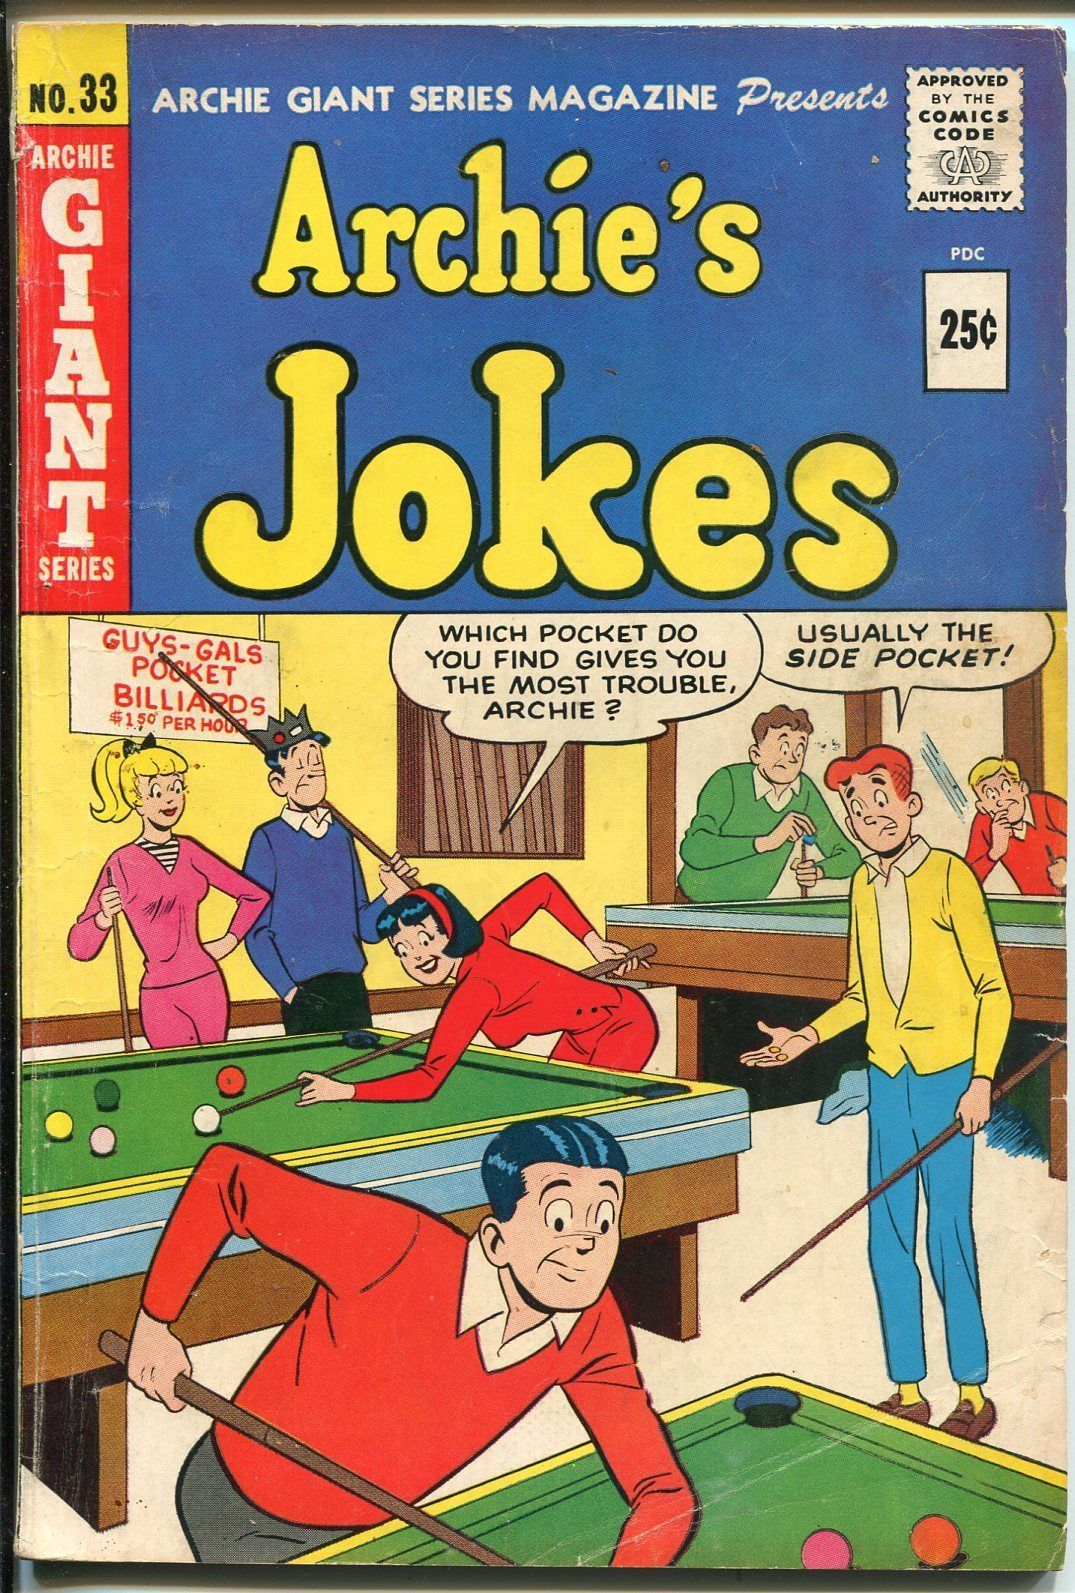 Primary image for Archie's Jokes #33 1965-Archie Giant-Betty-Veronica-pool hall cover-VG